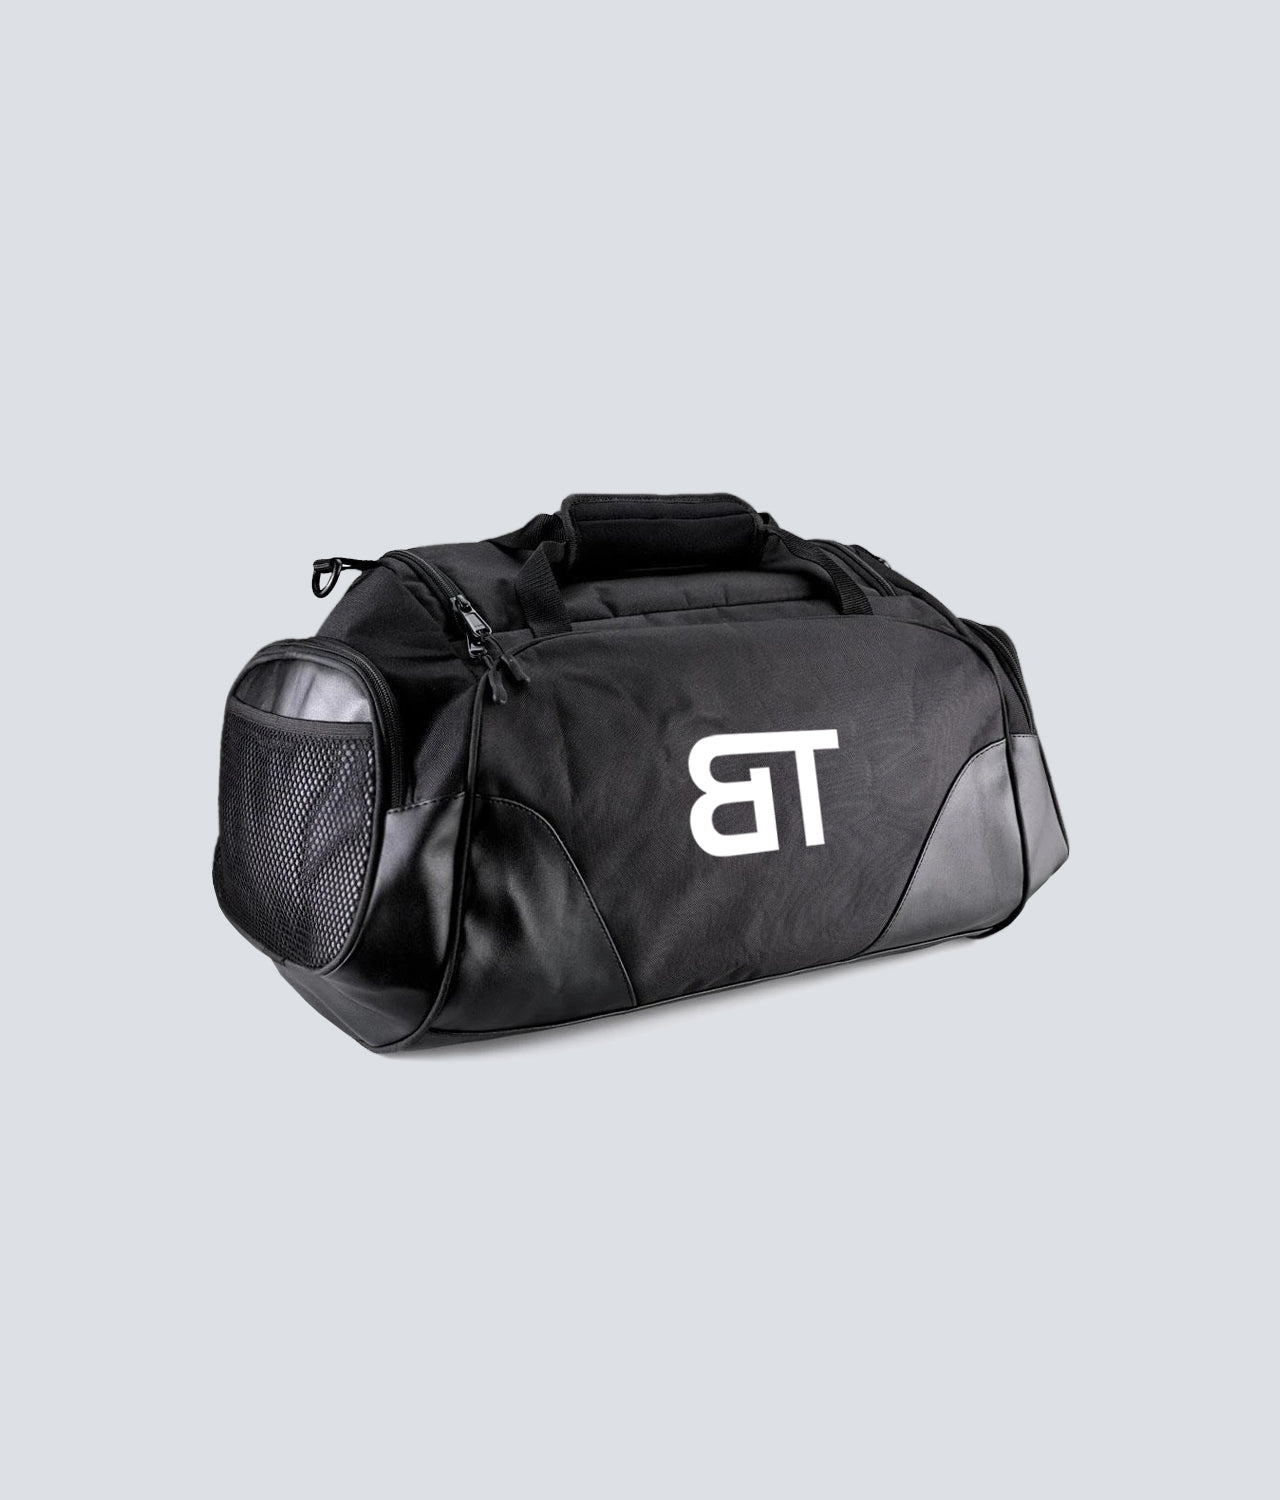 Born Tough Adjustable Shoulder Strap Black Gym Workout Duffel Bag